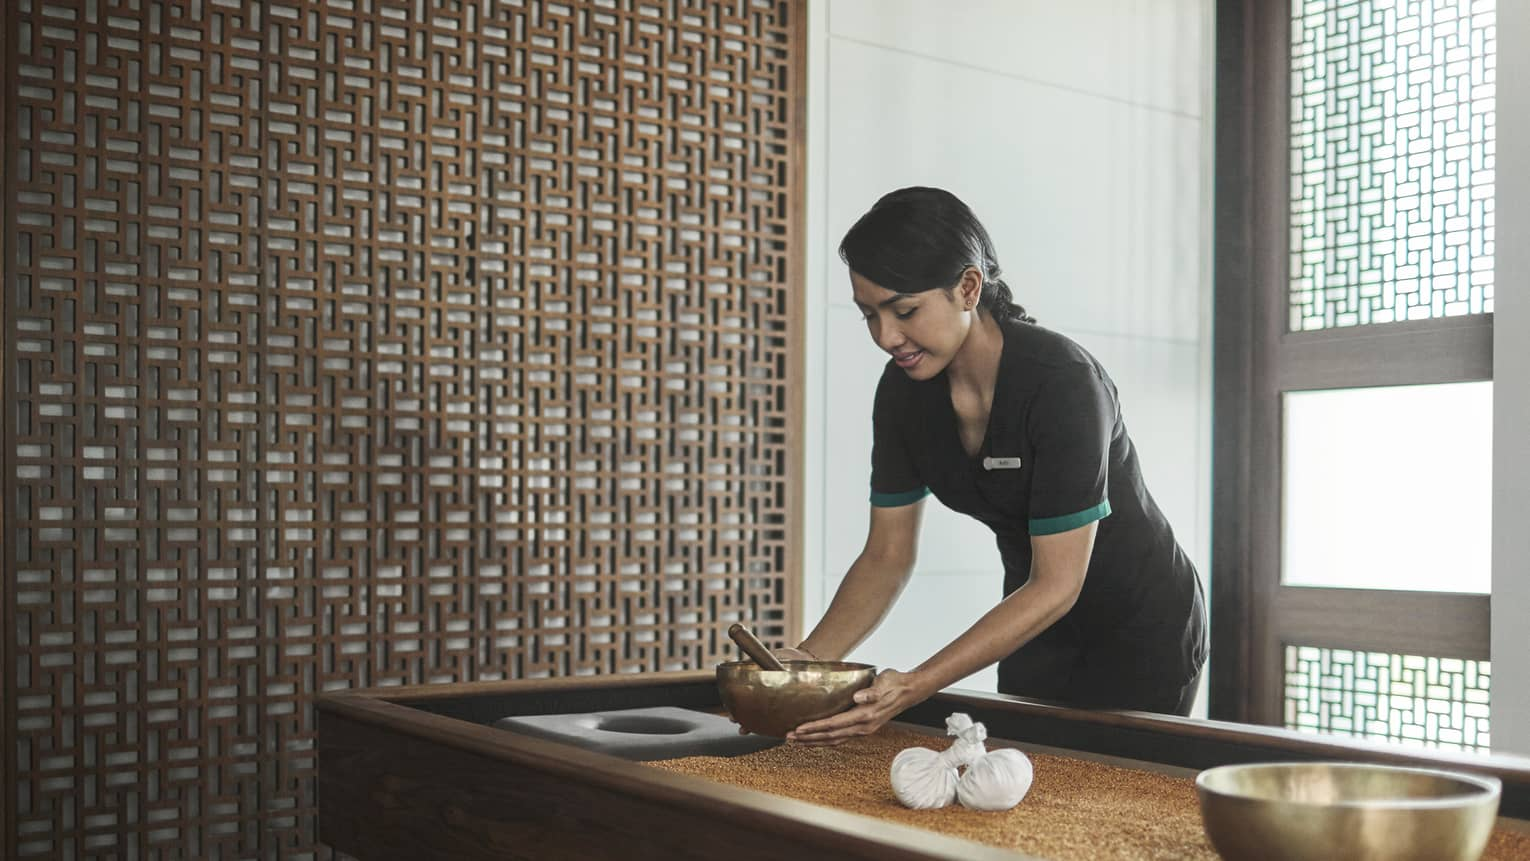 Pear Spa staff places copper bowl on table